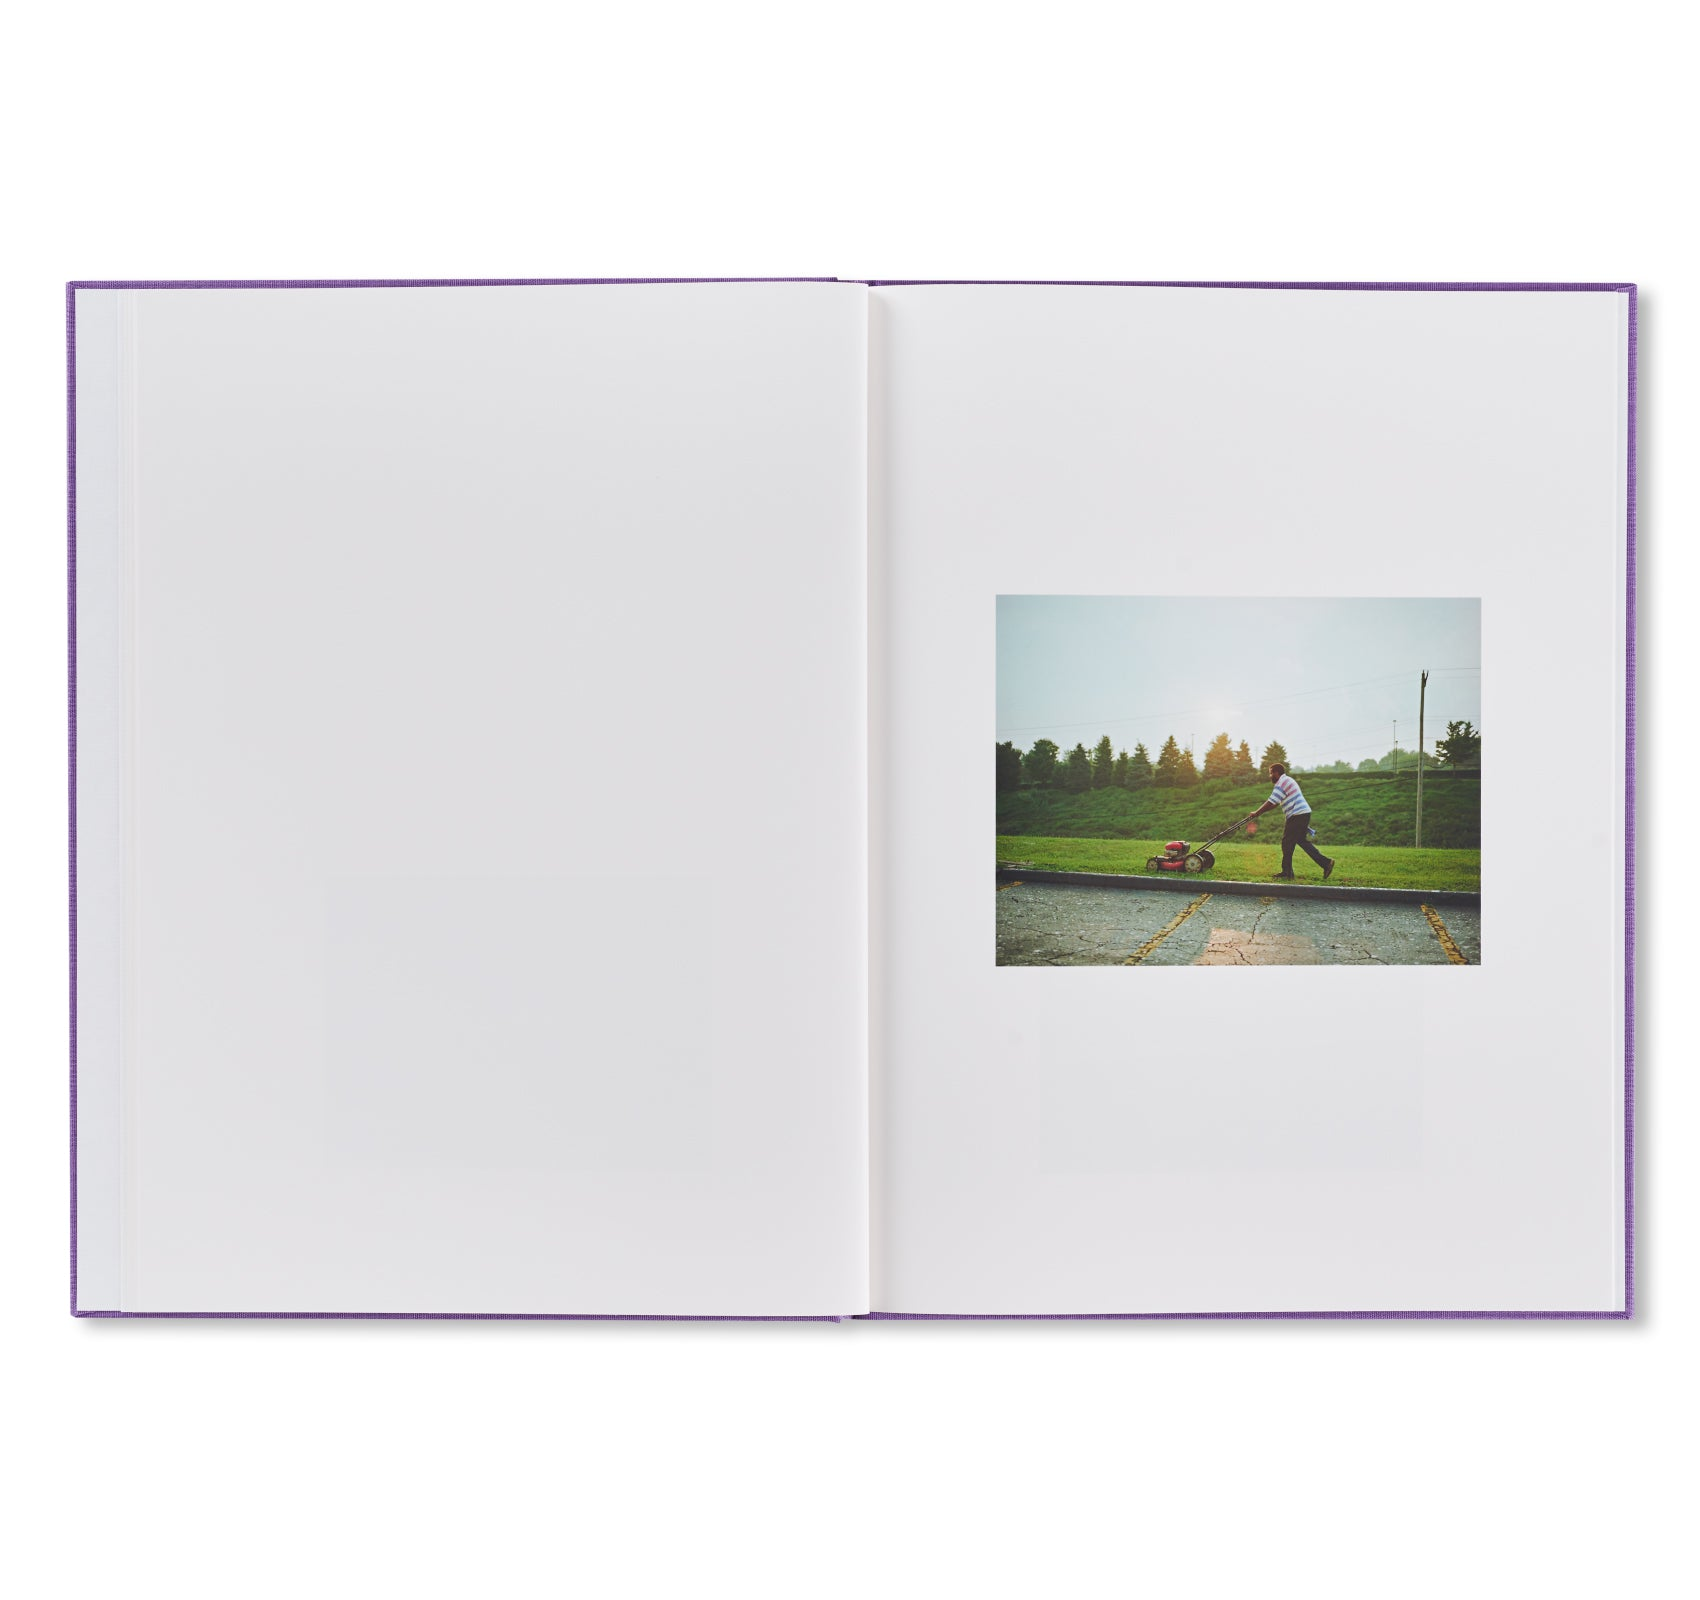 A SHIMMER OF POSSIBILITY by Paul Graham [SIGNED]